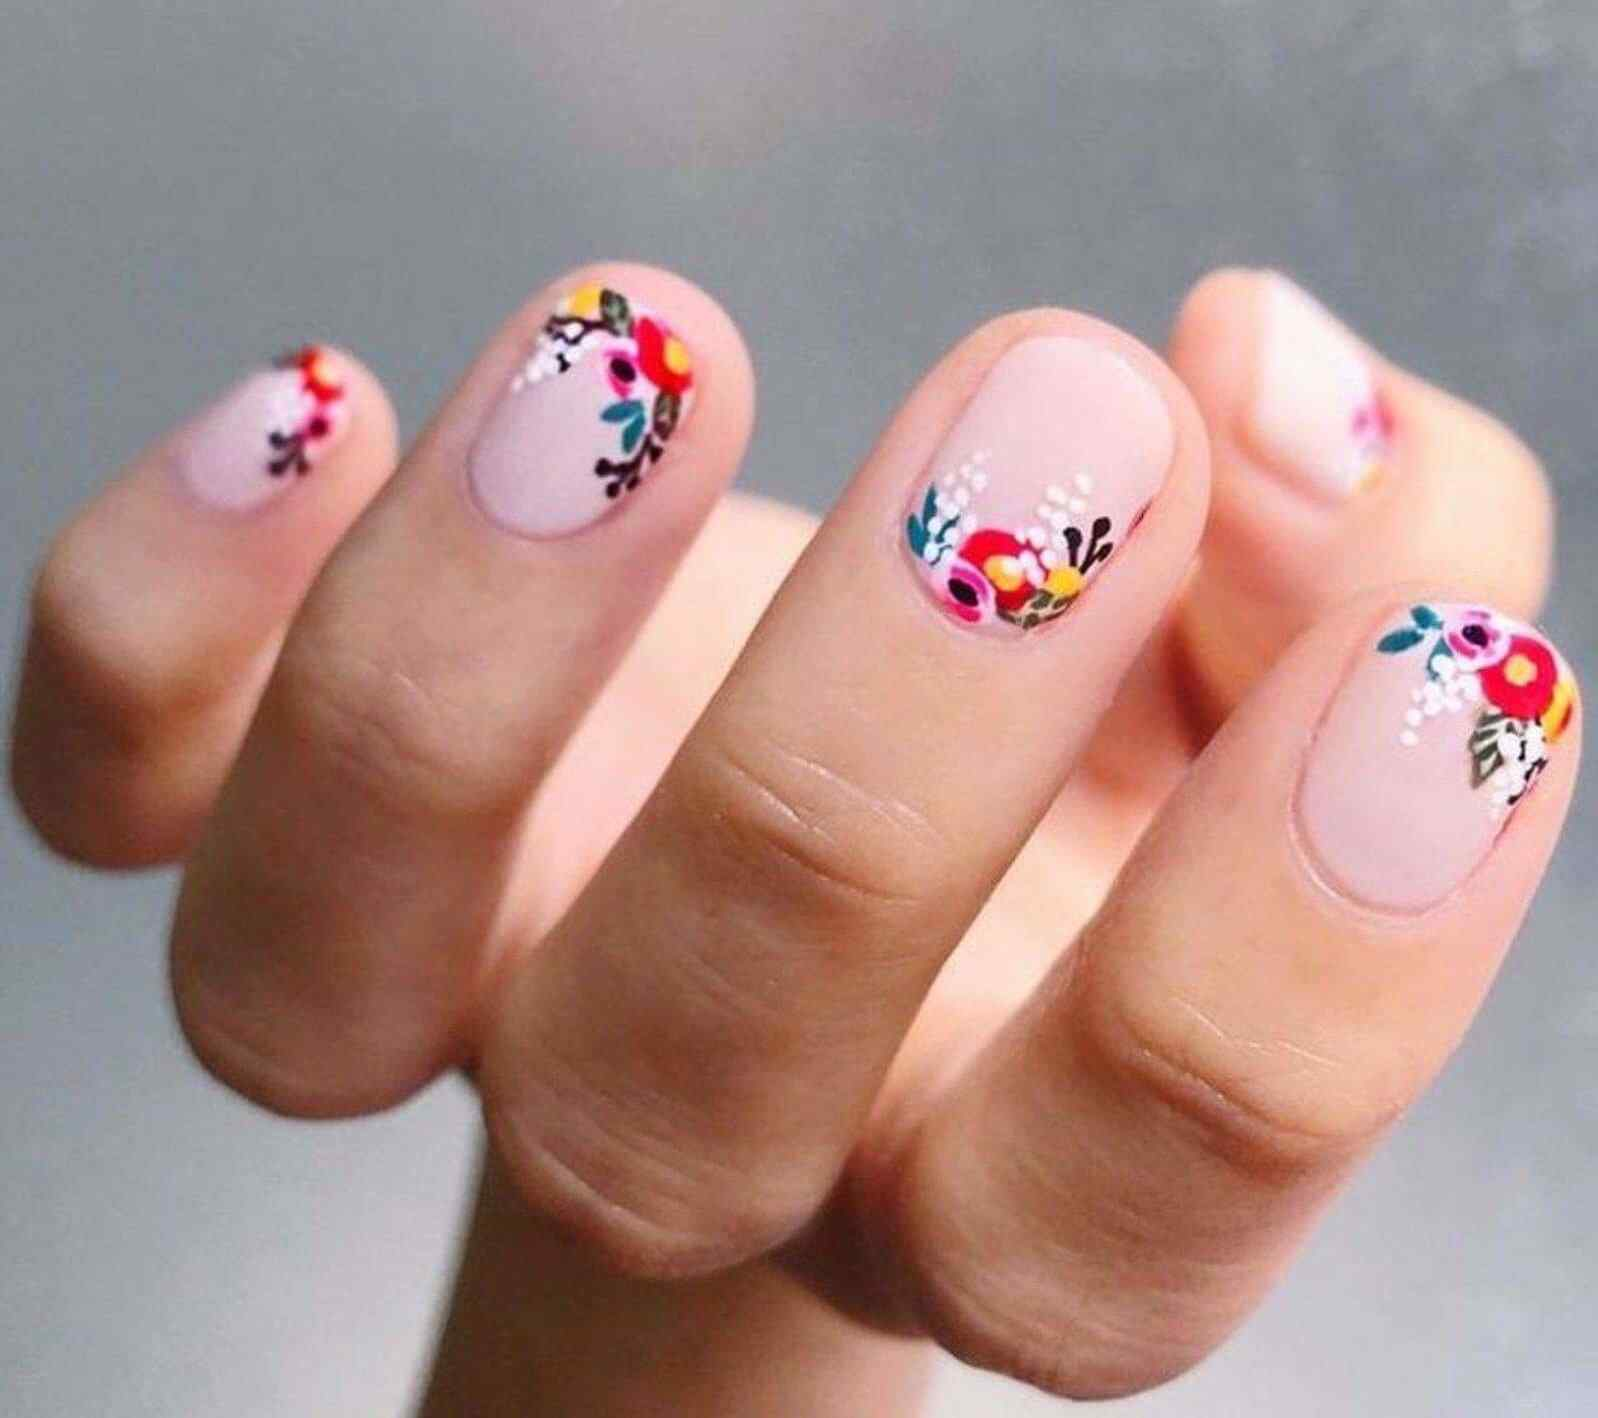 Nails decorated with flowers